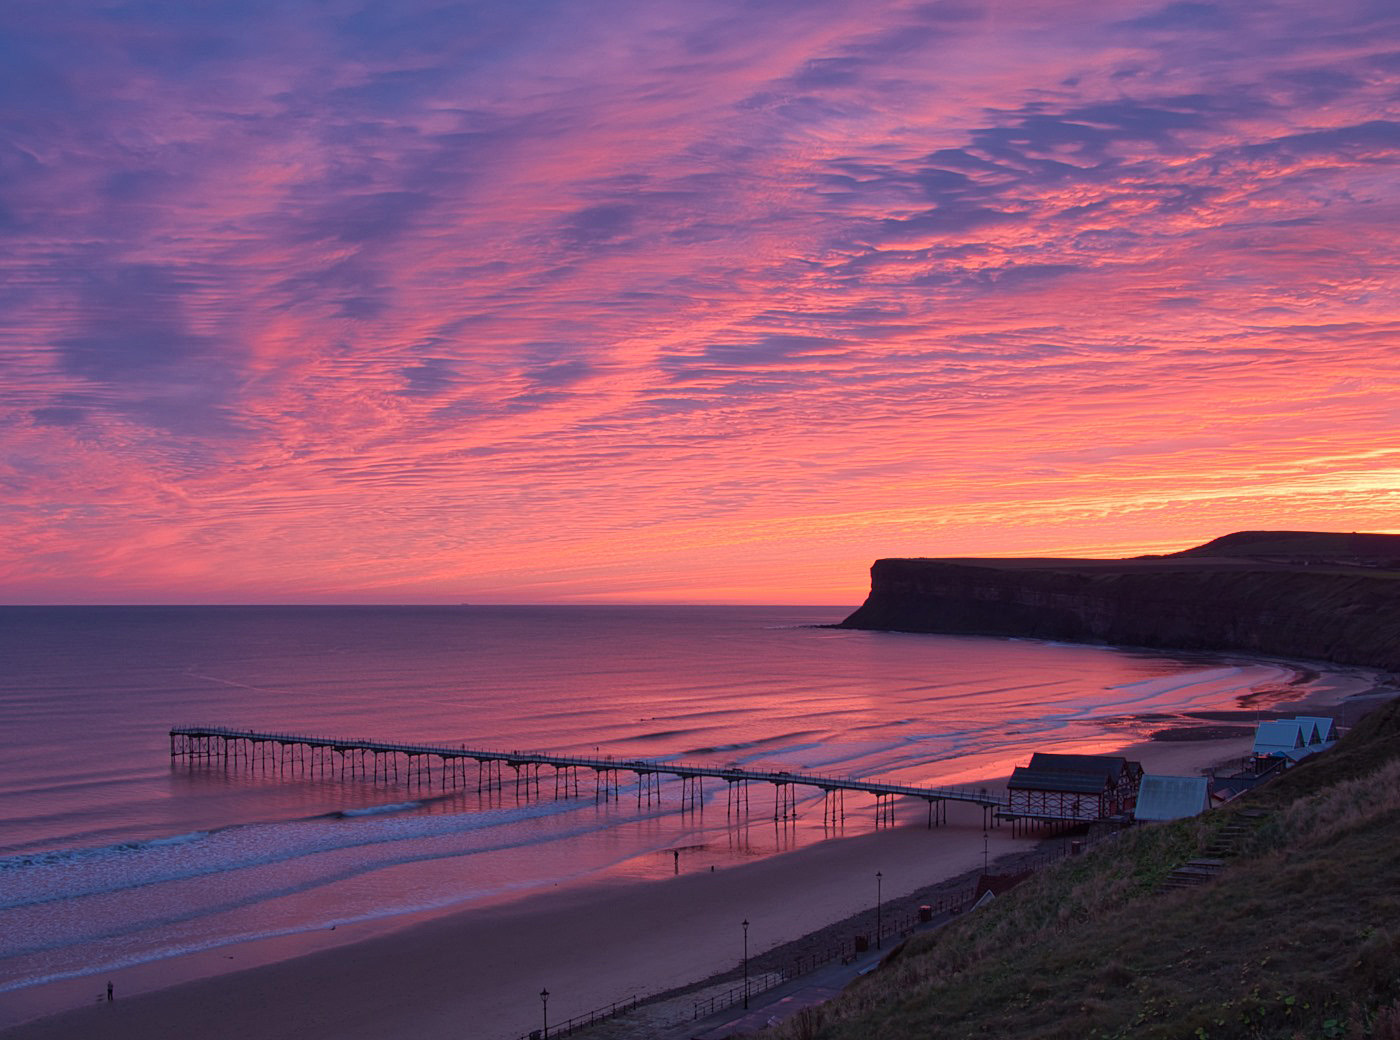 Pictures: Region awakes to stunning sunrise